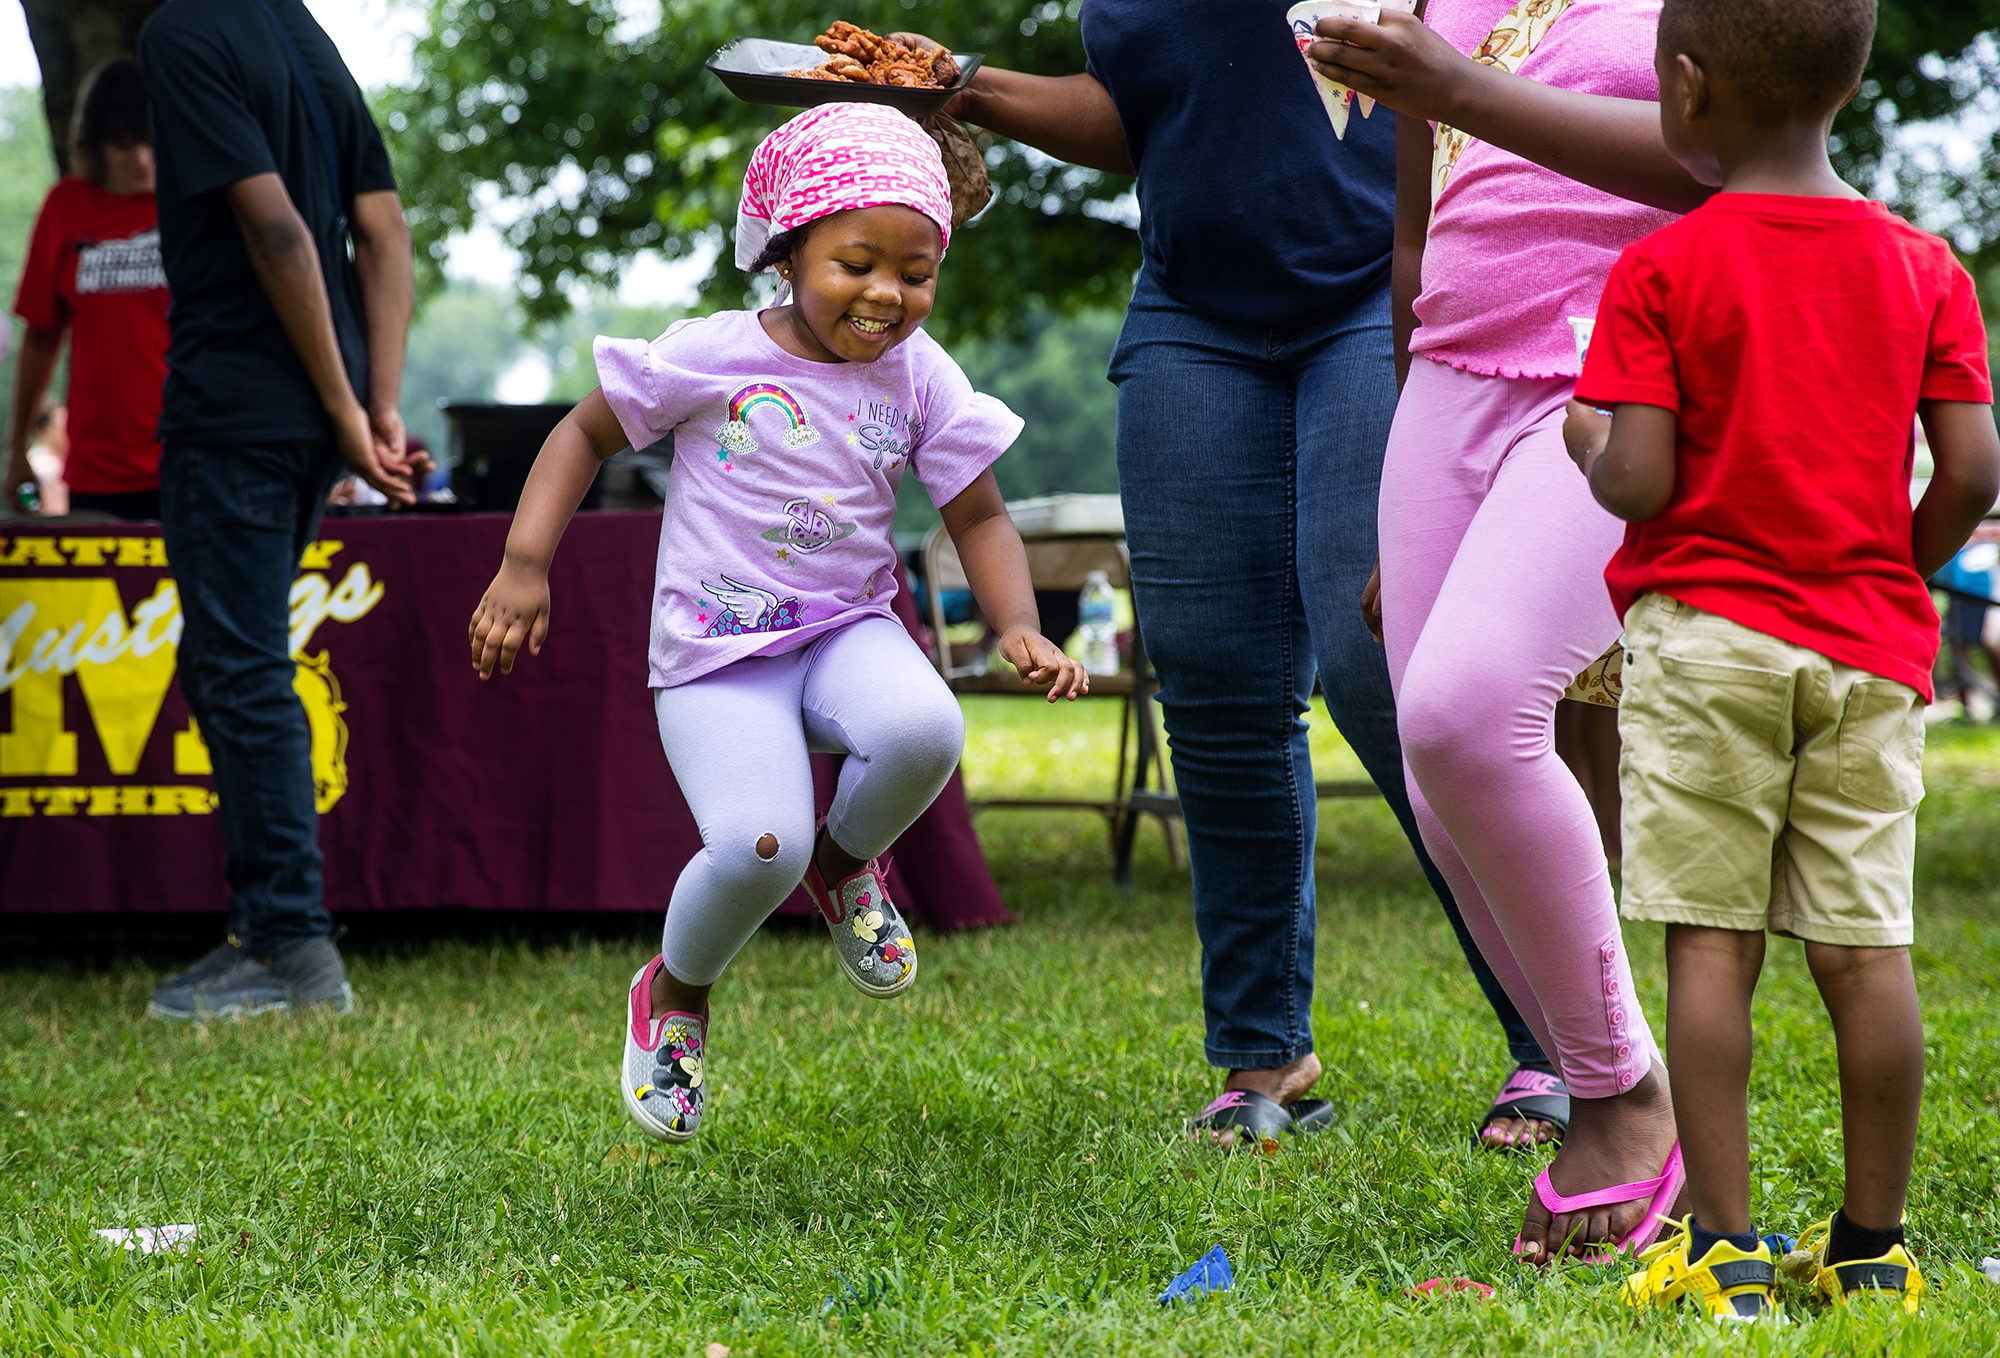 Three-year-old Kemonie Frazier leaps into the air in celebration after tossing a bag through a hole in the bean bag toss during the Back to School Block Party hosted by the Stop the Violence Project at Jaycee Park Saturday, July 14, 2018. [Ted Schurter/The State Journal-Register]